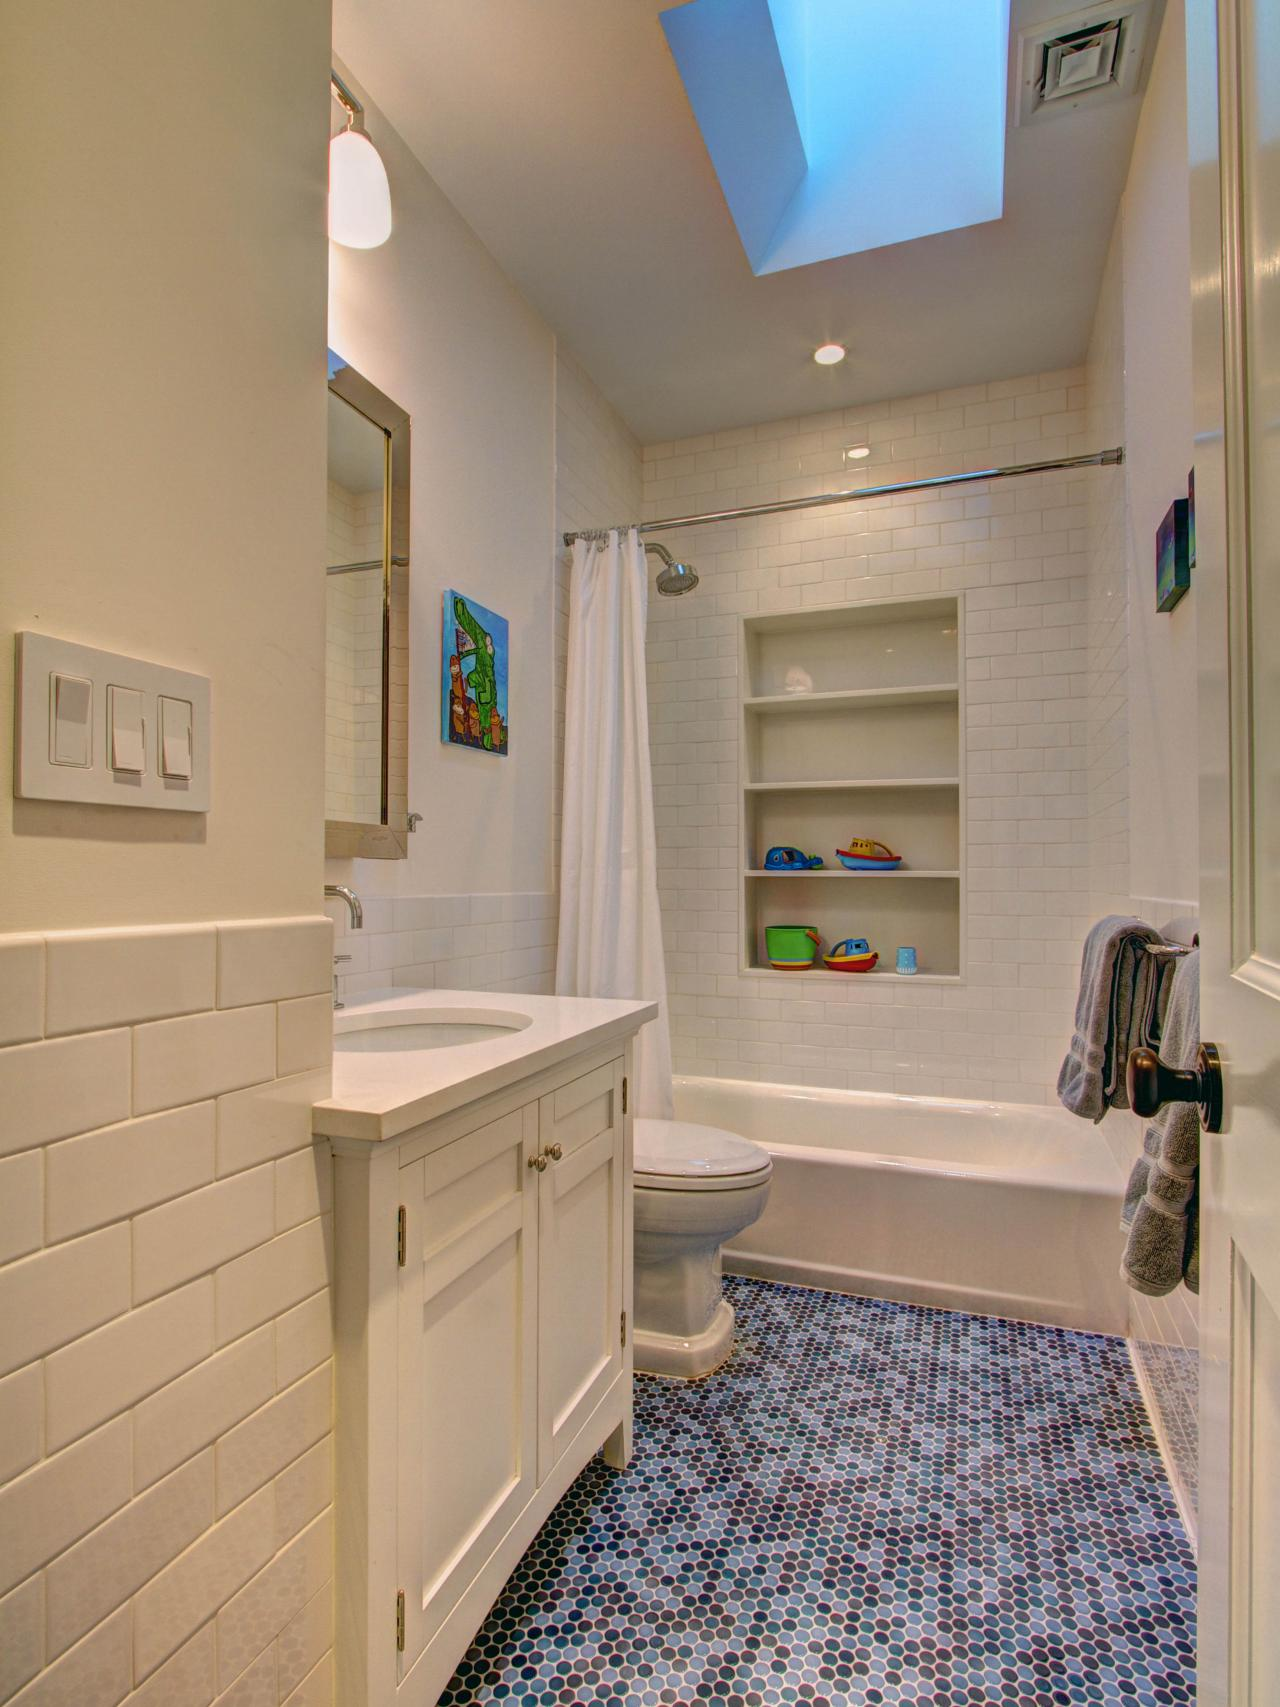 Pleasing Childrens Bathroom With Blue Penny Tile Hgtv Download Free Architecture Designs Scobabritishbridgeorg